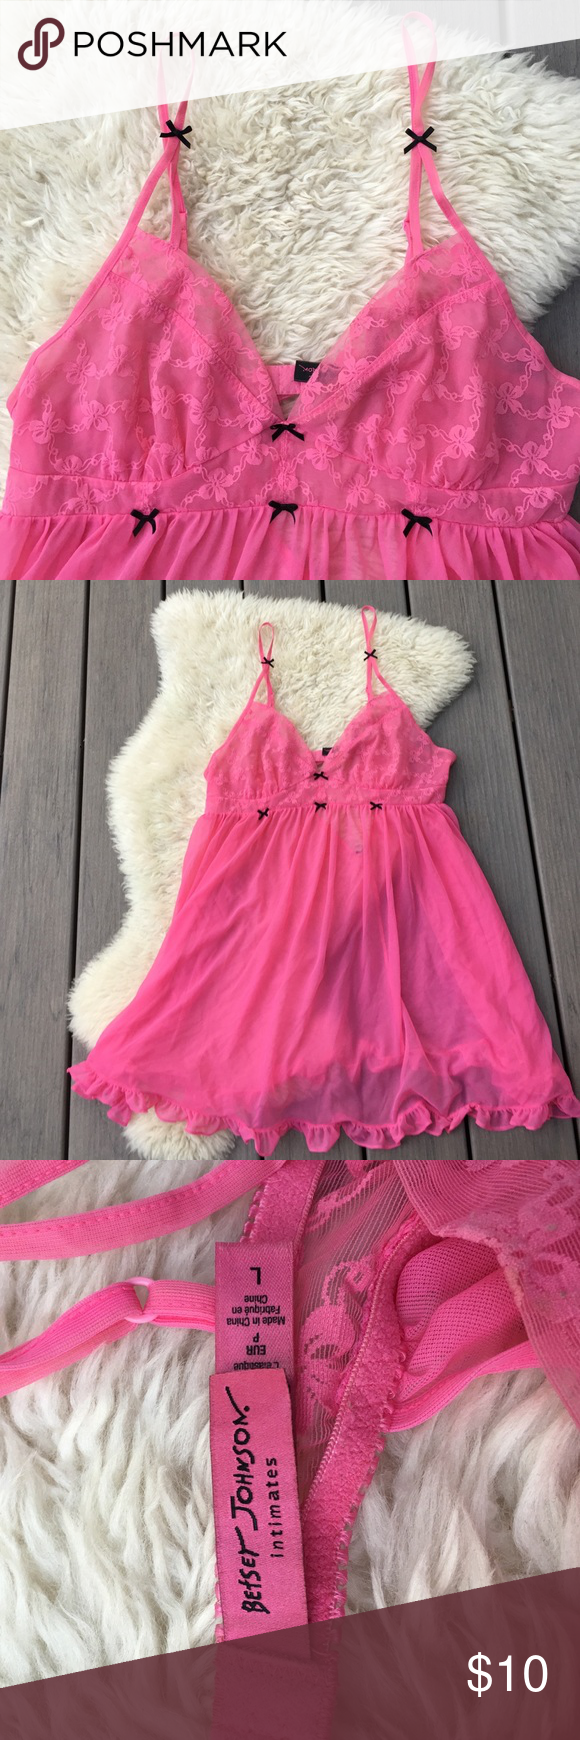 🎀 Betsey Johnson sexy camisole 🎀 This is the ultimate cute and sexy camisole/ nightie thingie. It's shear and hot pink and has cute bows! Betsey Johnson Intimates & Sleepwear